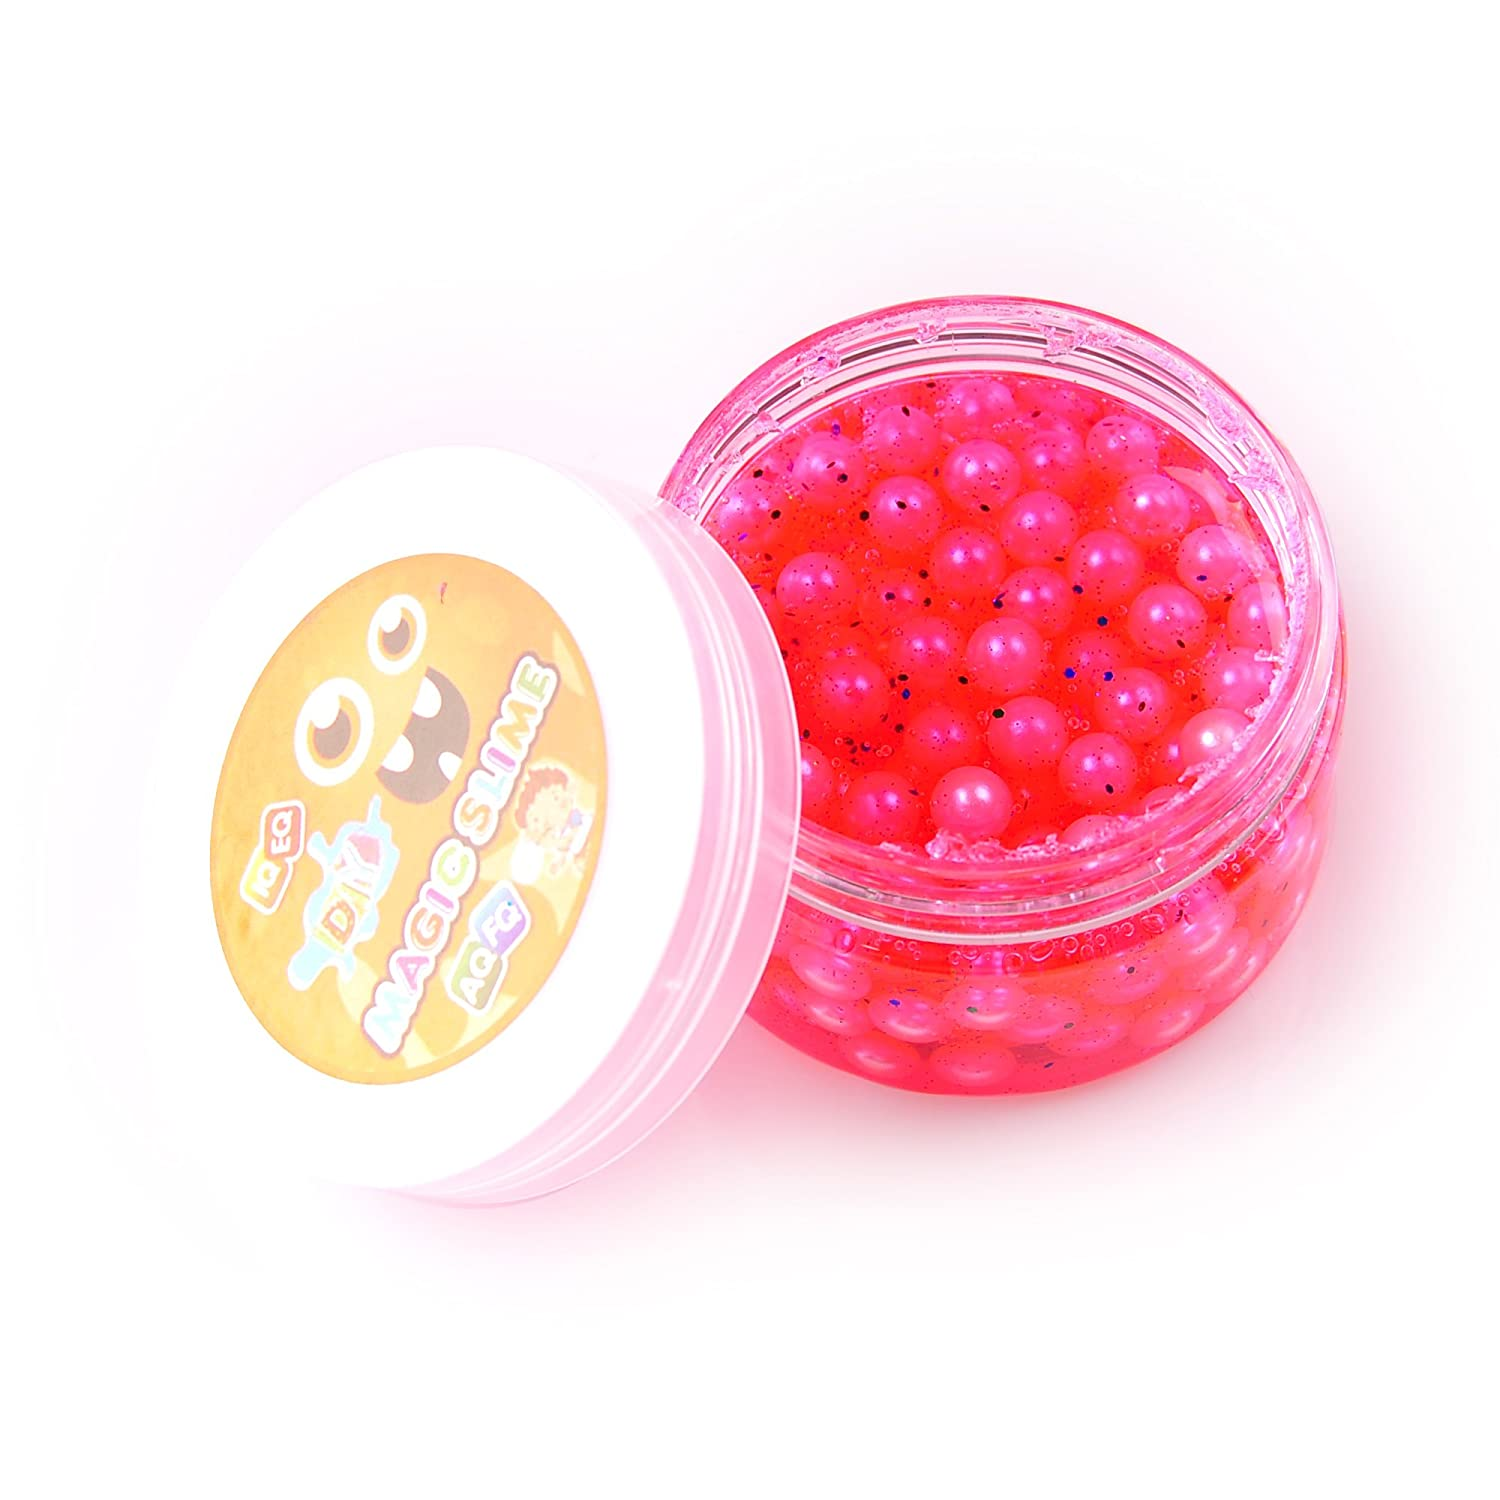 Colorful Pearl Birthday Beads Slime - 5 oz Clear Based Slime With Glitter and Foam Beads (Purple) Kirinstores TR0394B-10